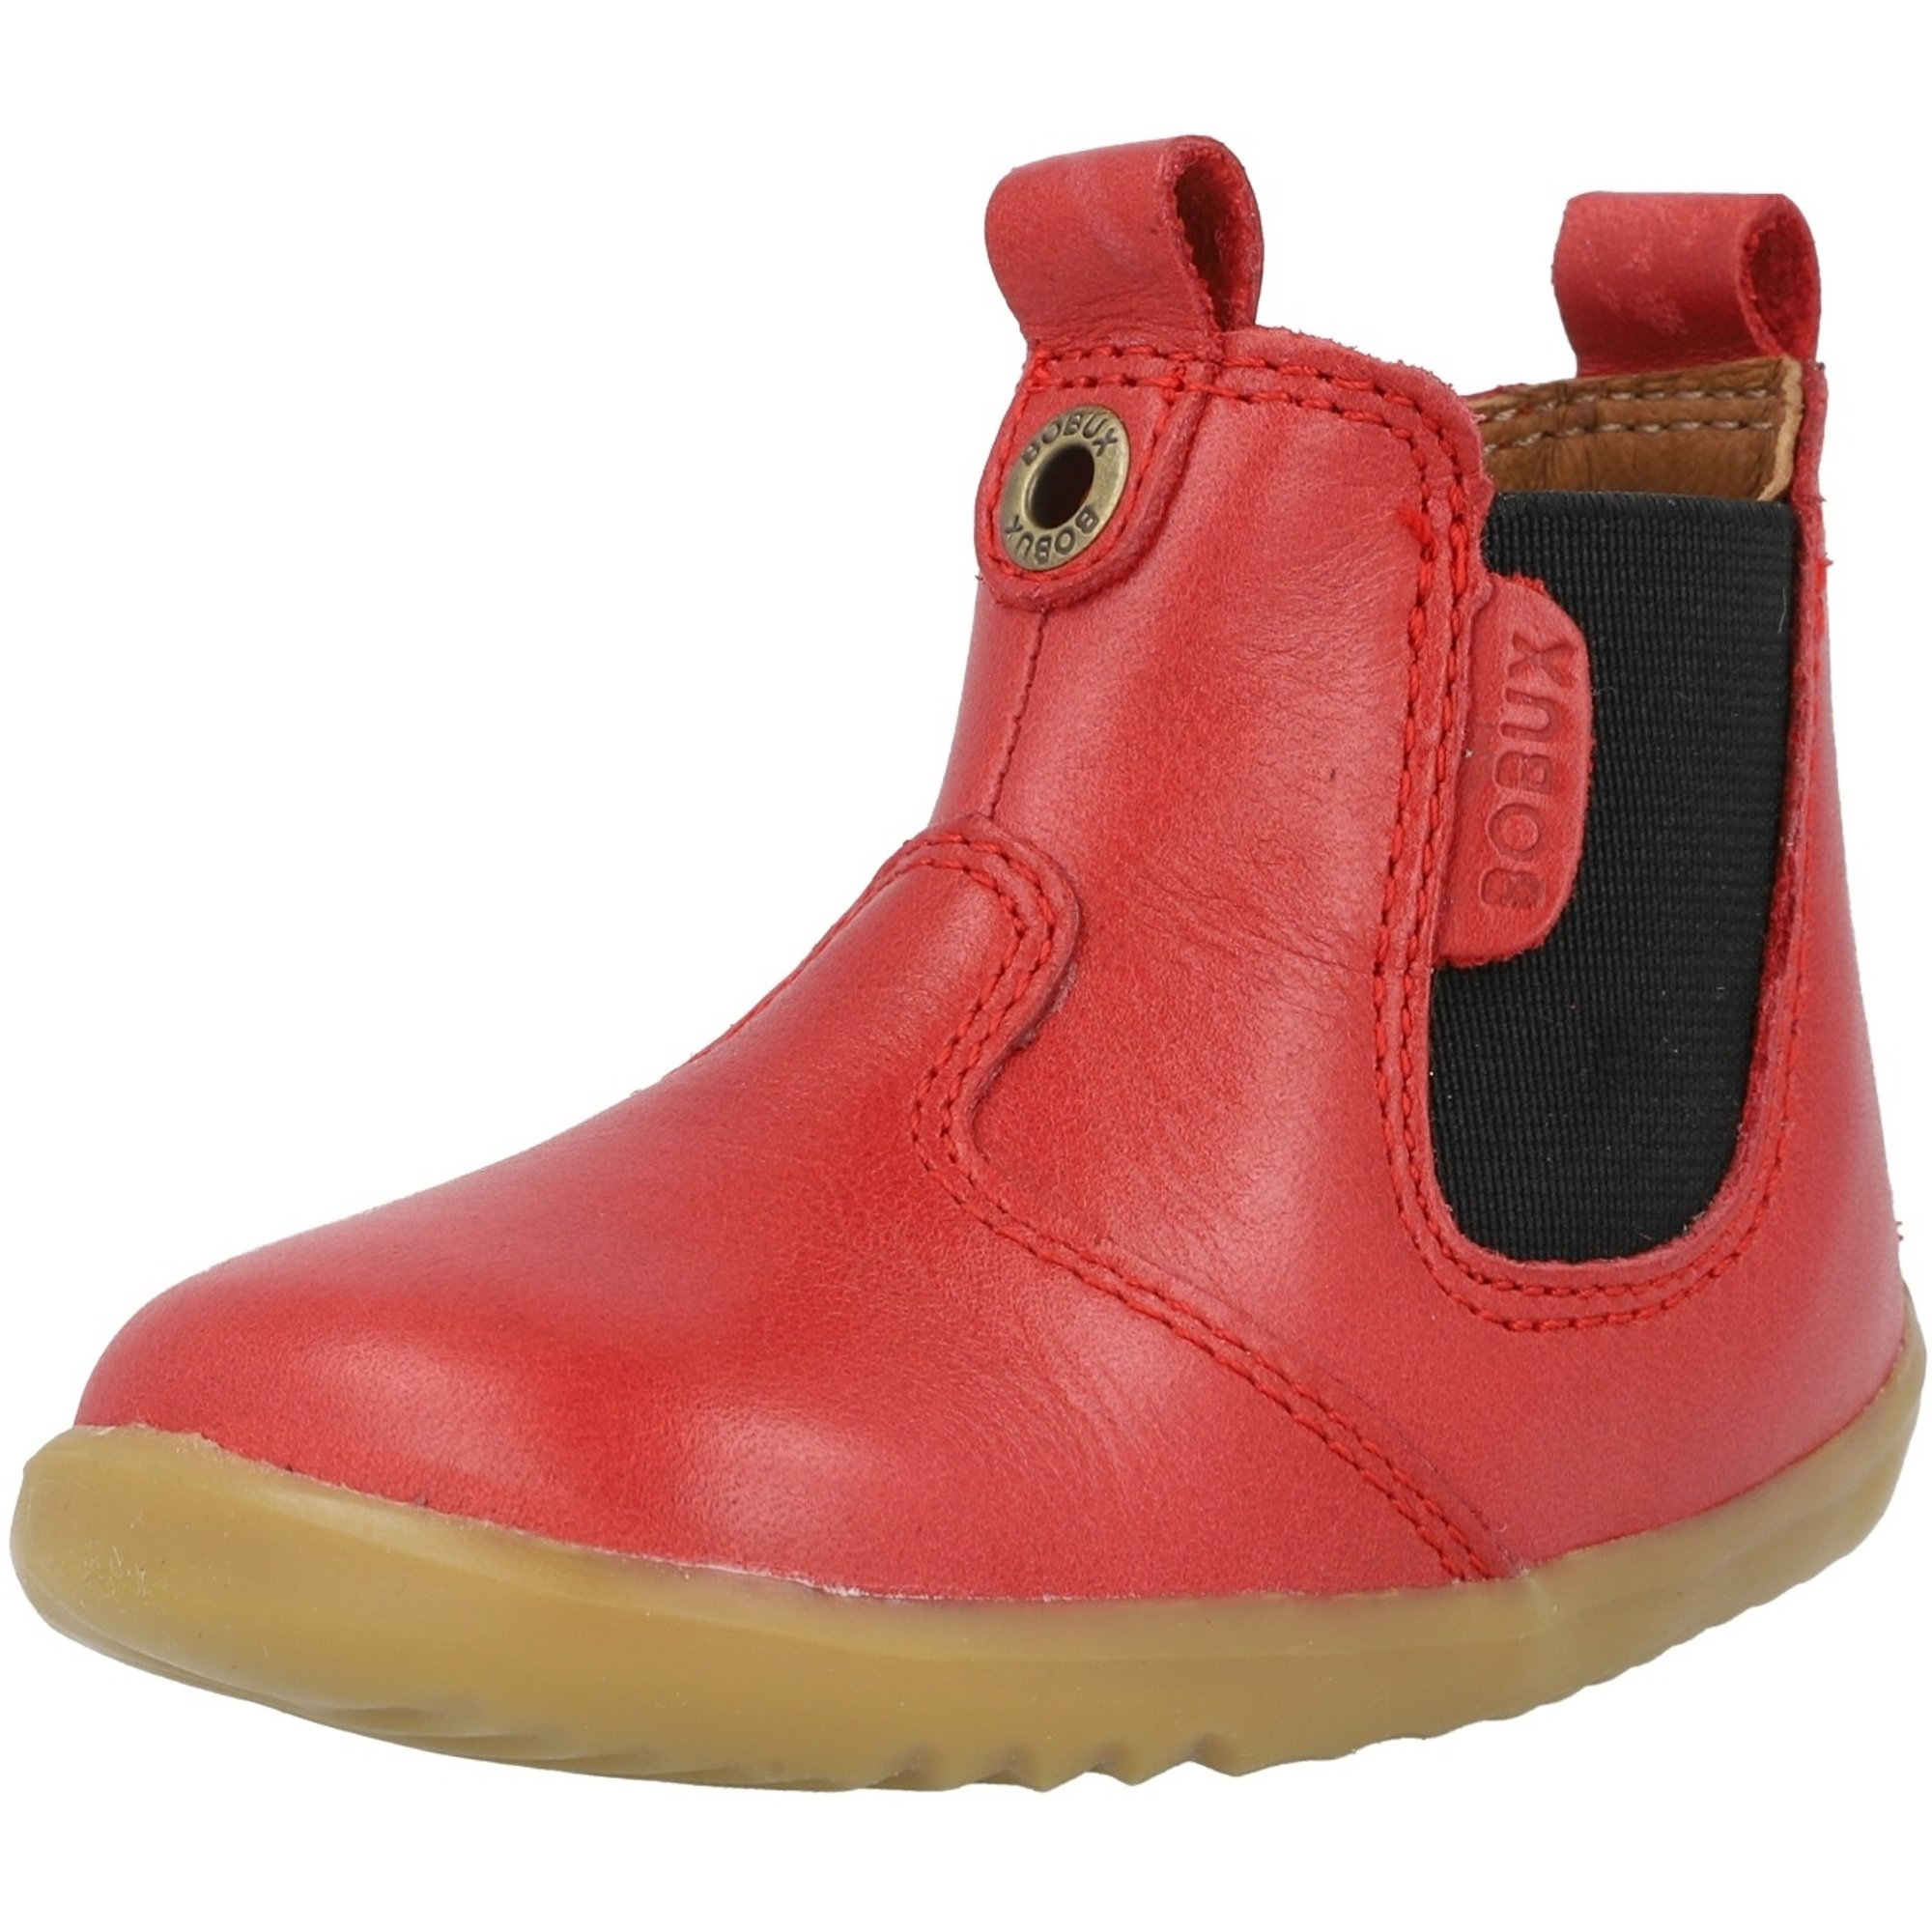 Bobux Childrens Toddlers Jodhpur Step Up Boot Red